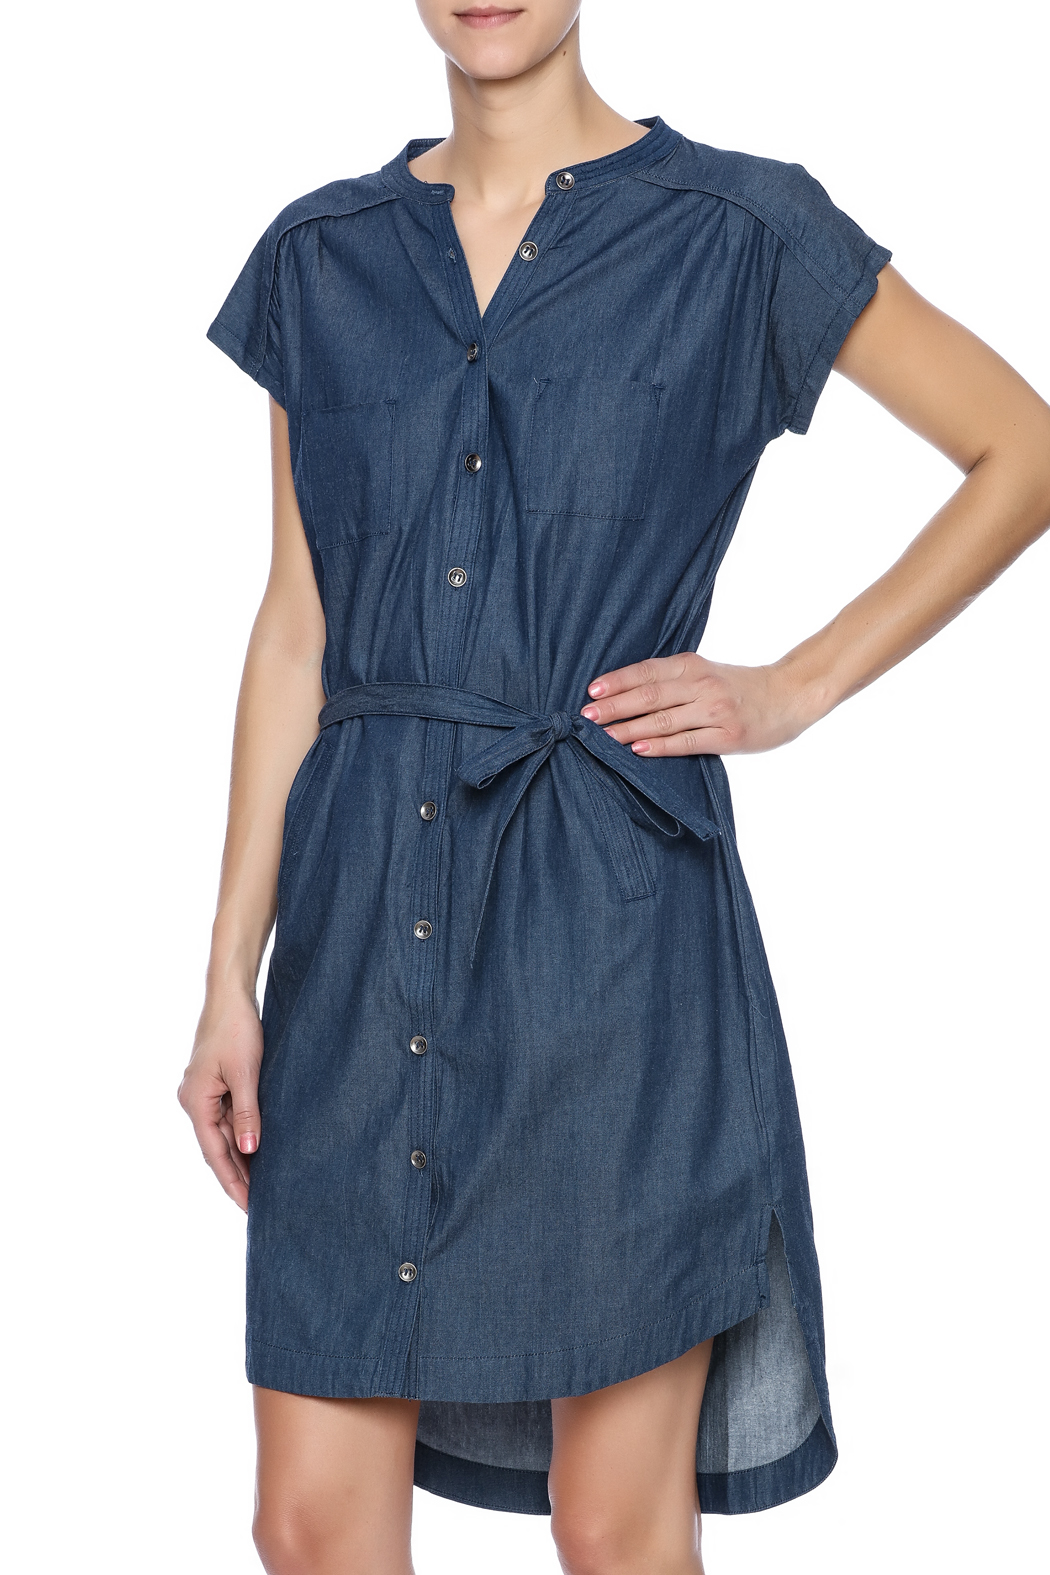 Pink Martini Casual Button Down Dress - Front Cropped Image